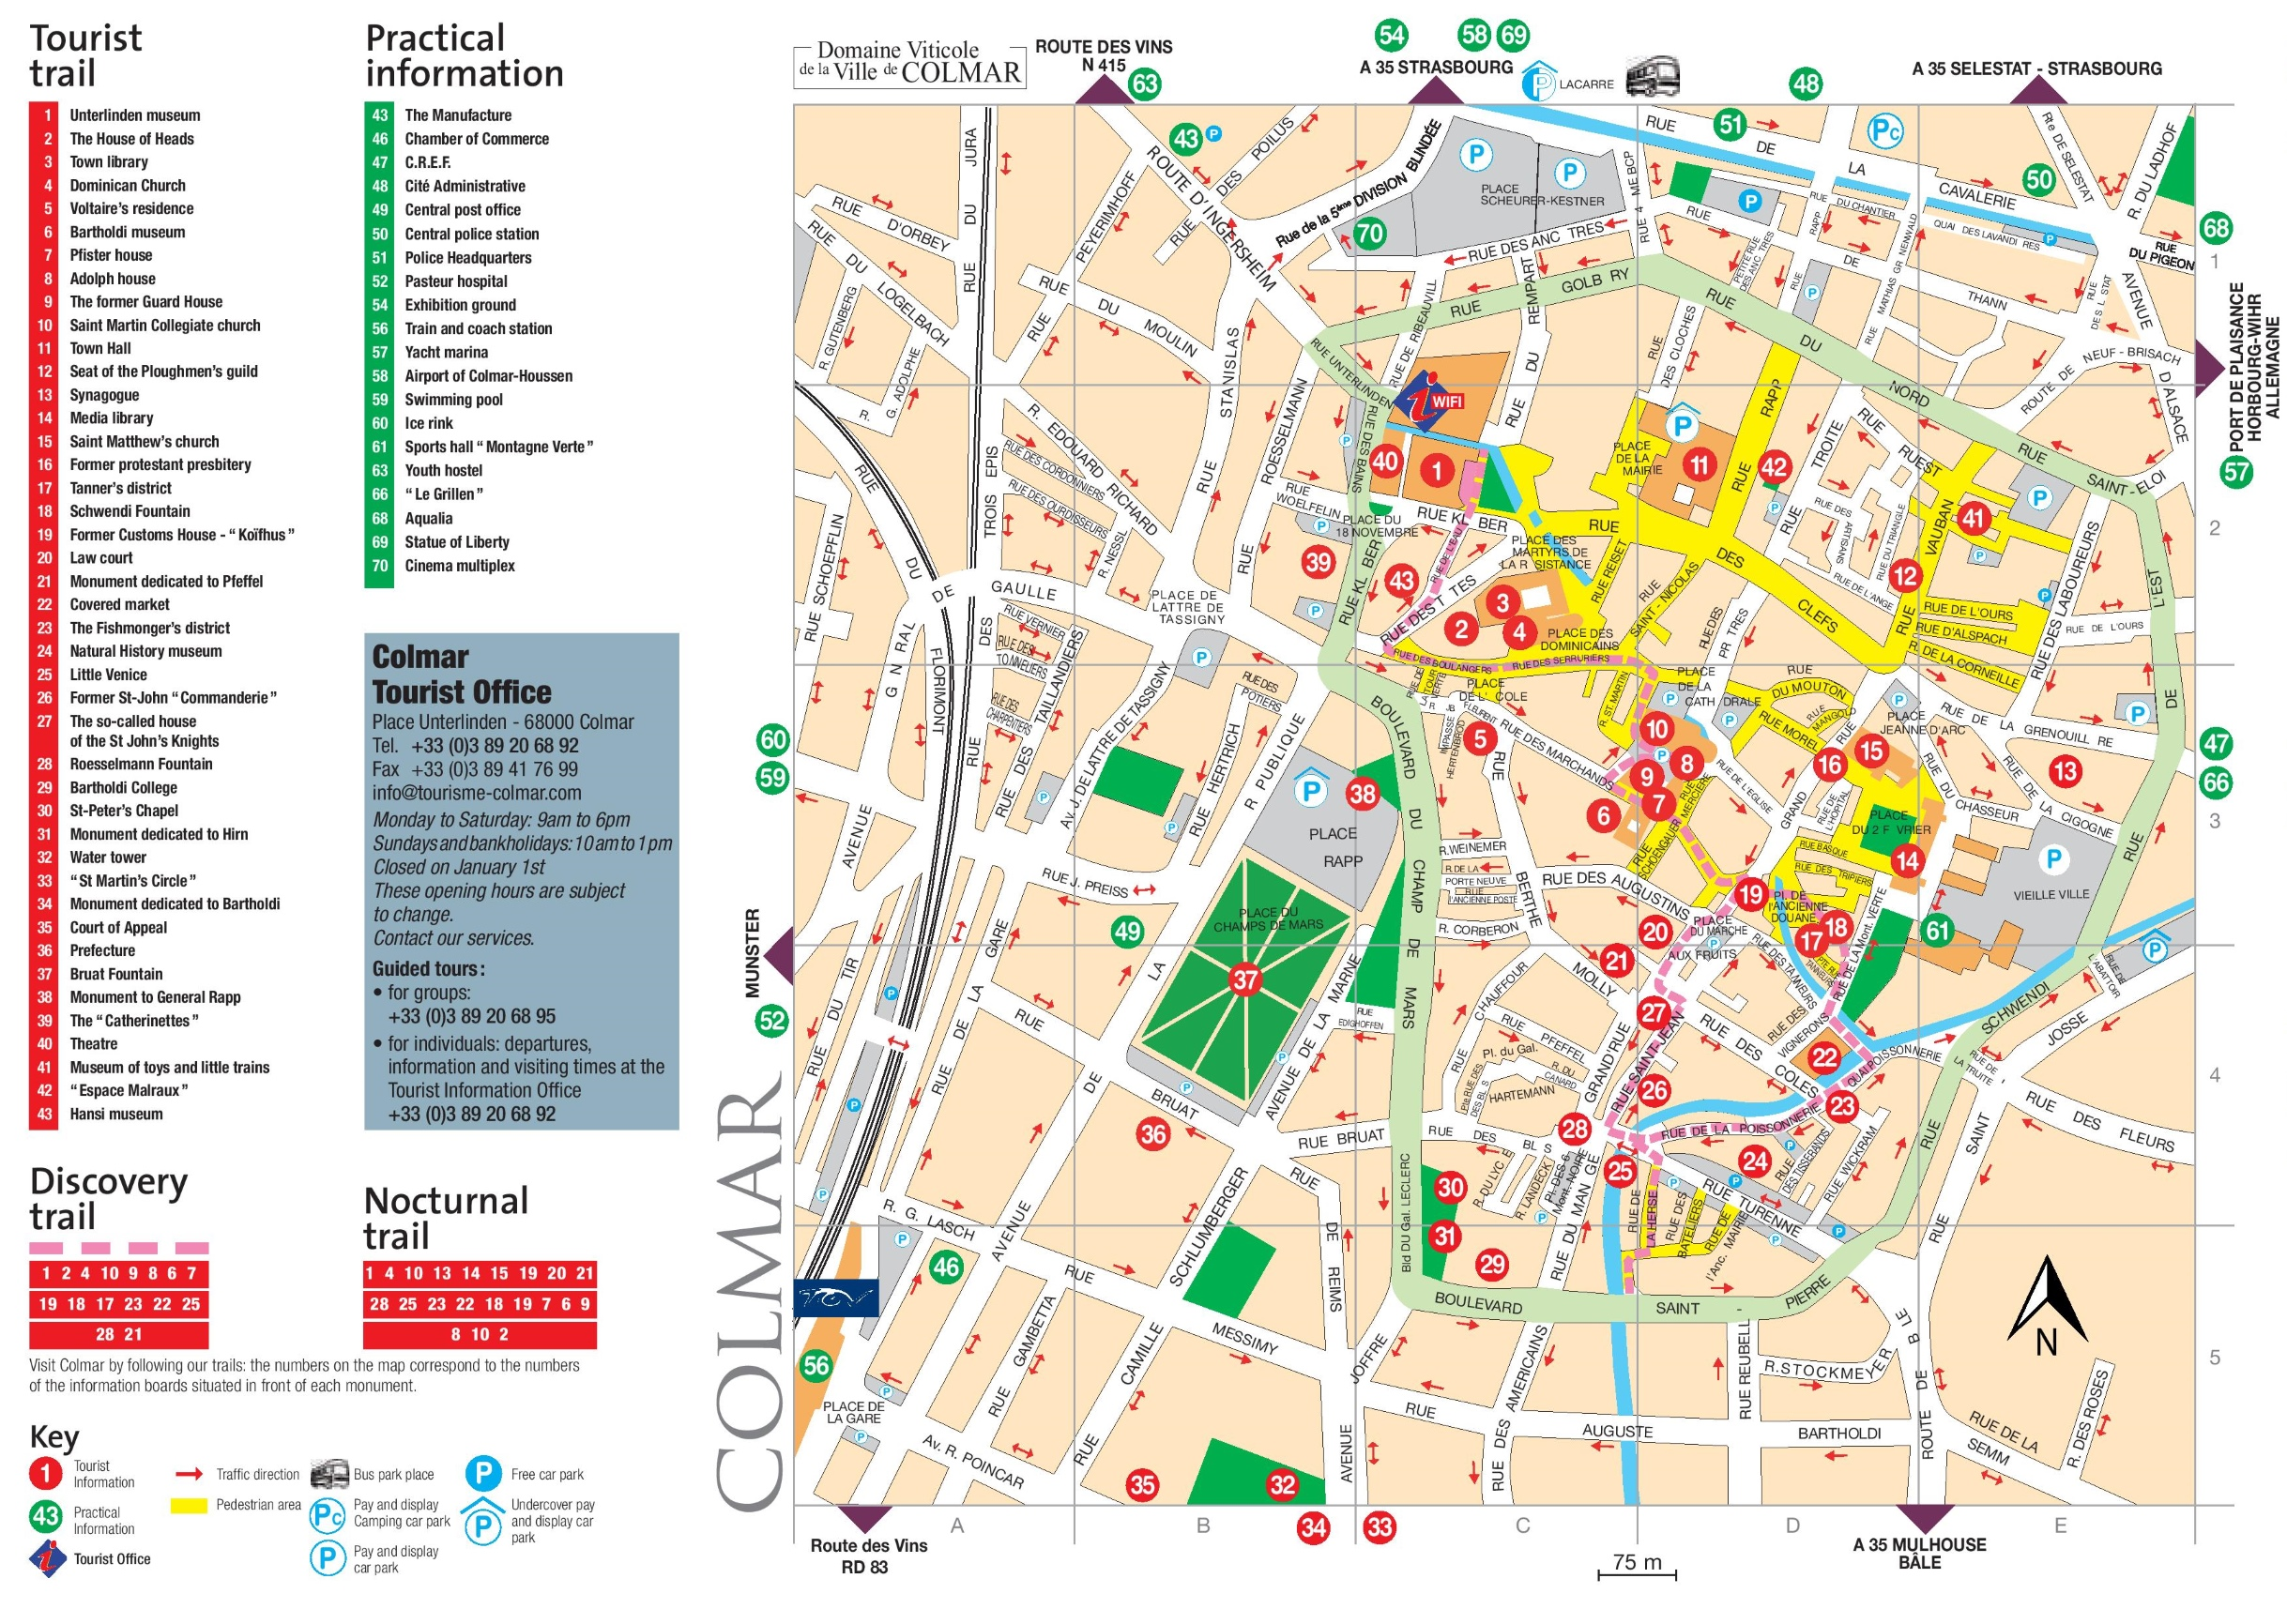 http://ontheworldmap.com/france/city/colmar/colmar-tourist-attractions-map.jpg